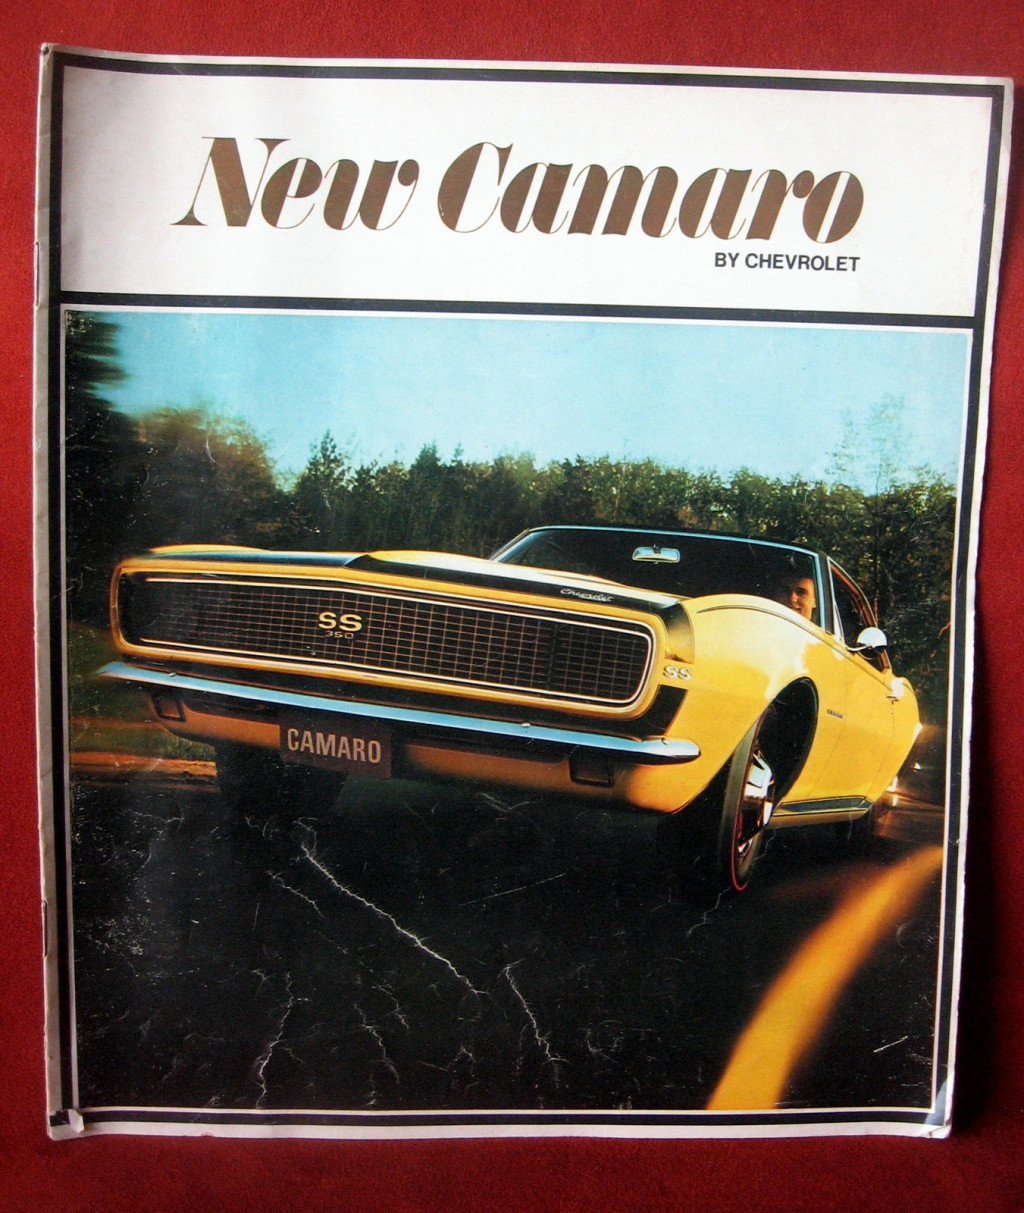 Primary image for Vintage Dealership 1967 Camaro Chevrolet Chevy Sport SS 350 Rally FREE SHIP